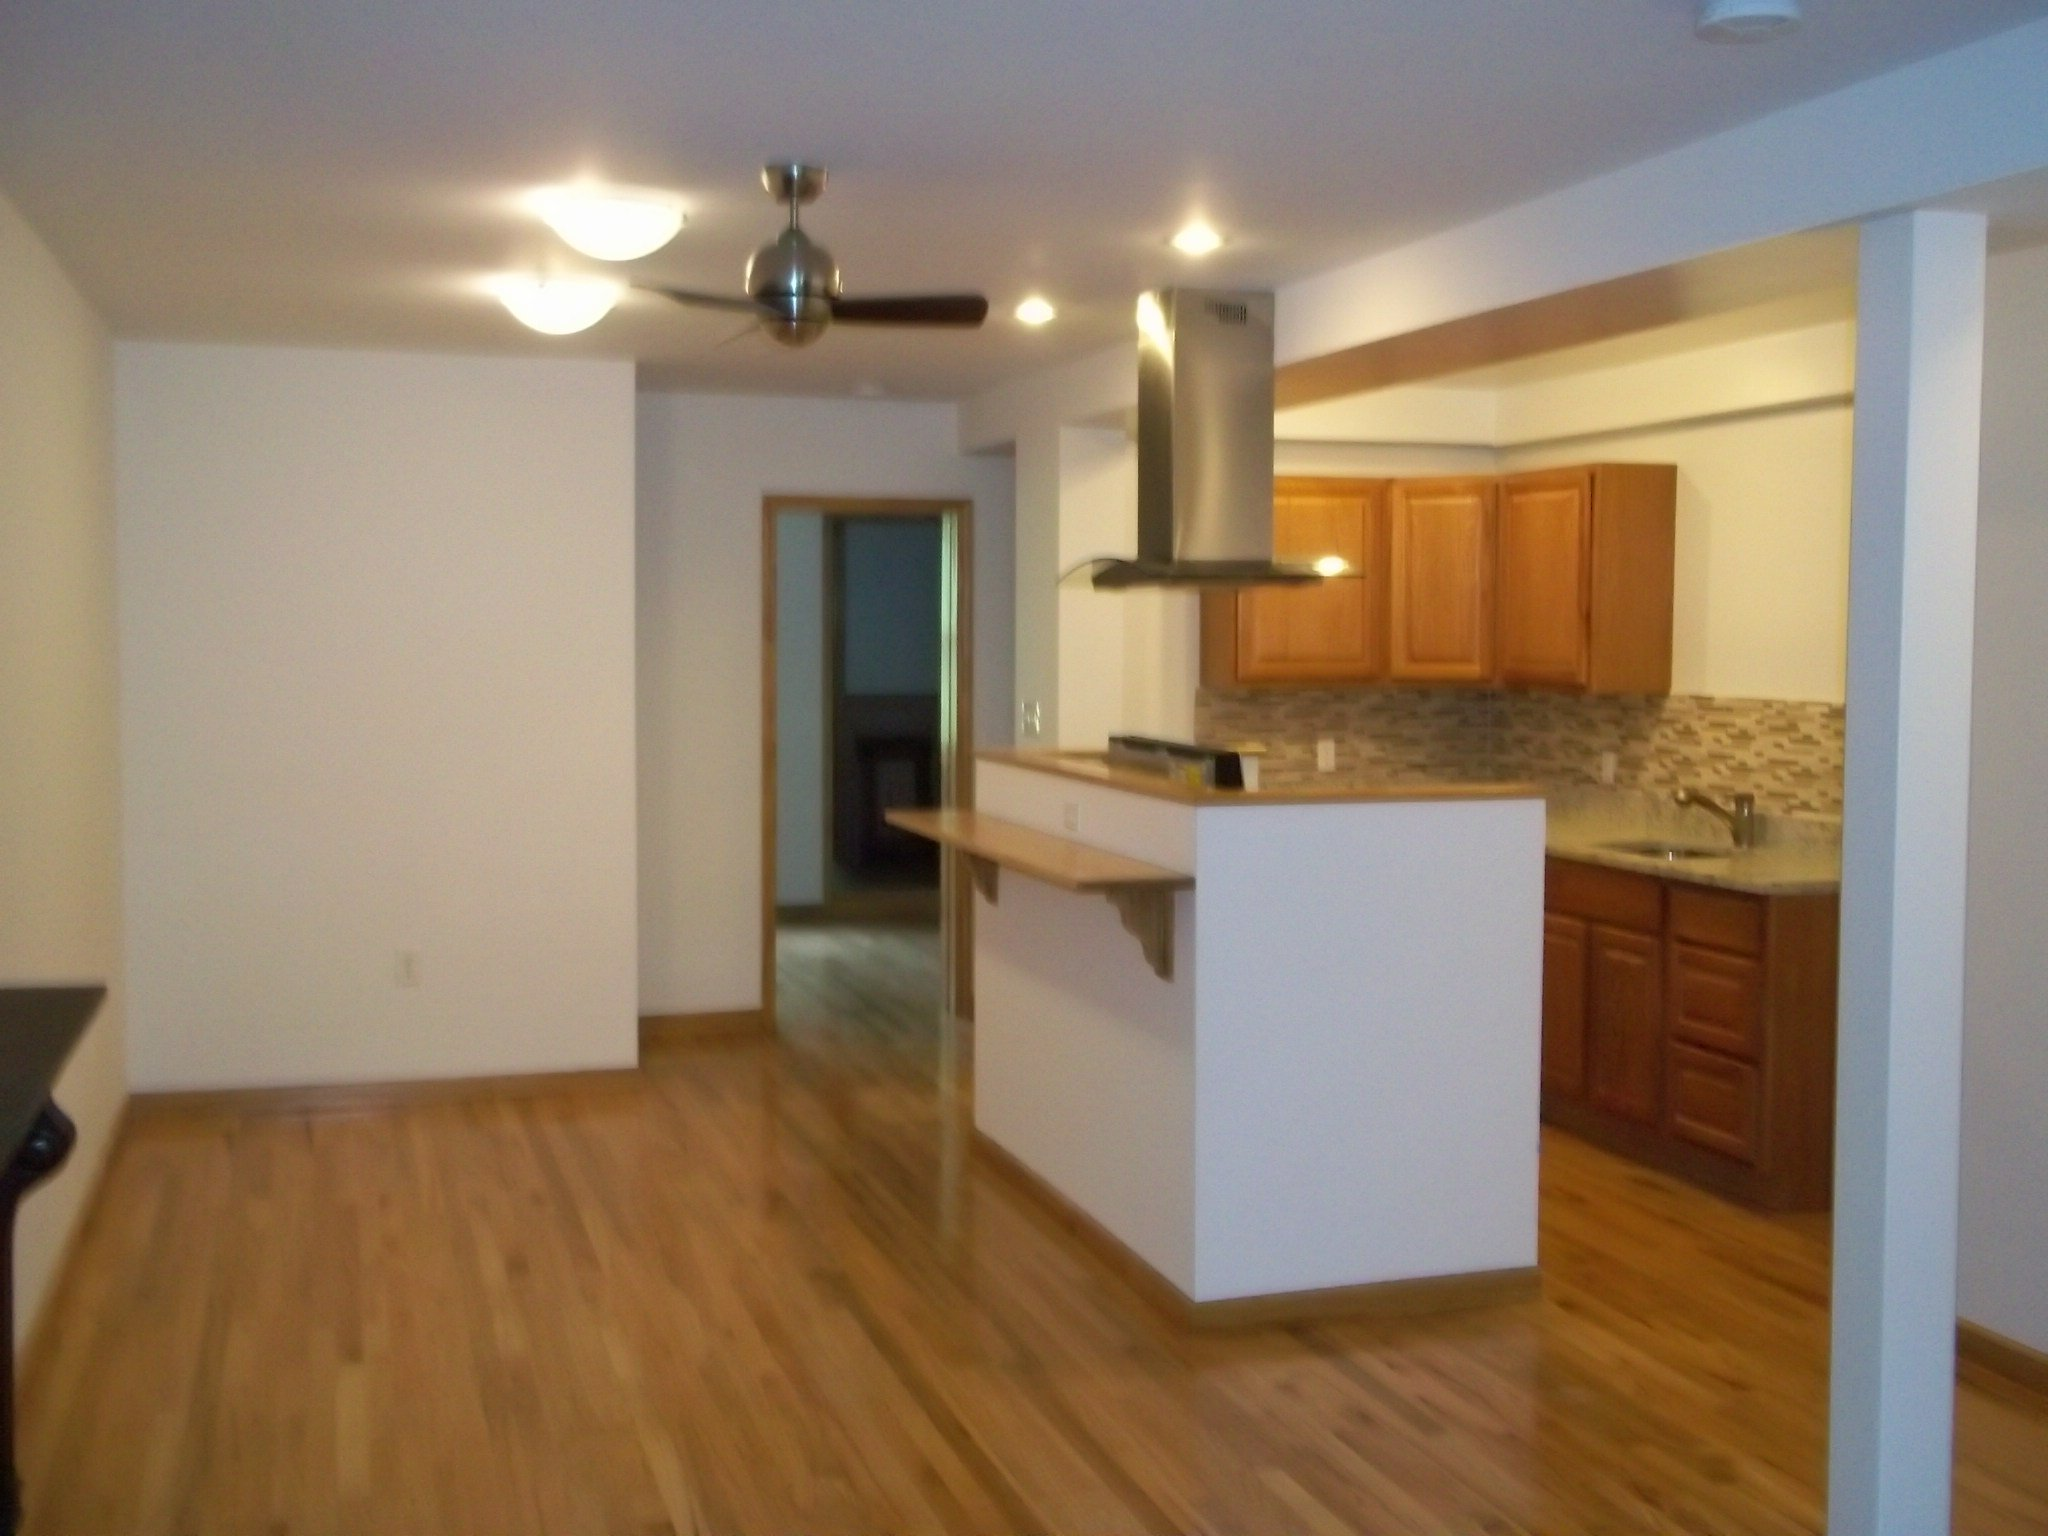 Stuyvesant heights 1 bedroom apartment for rent brooklyn for Studio 1 bedroom apartments rent